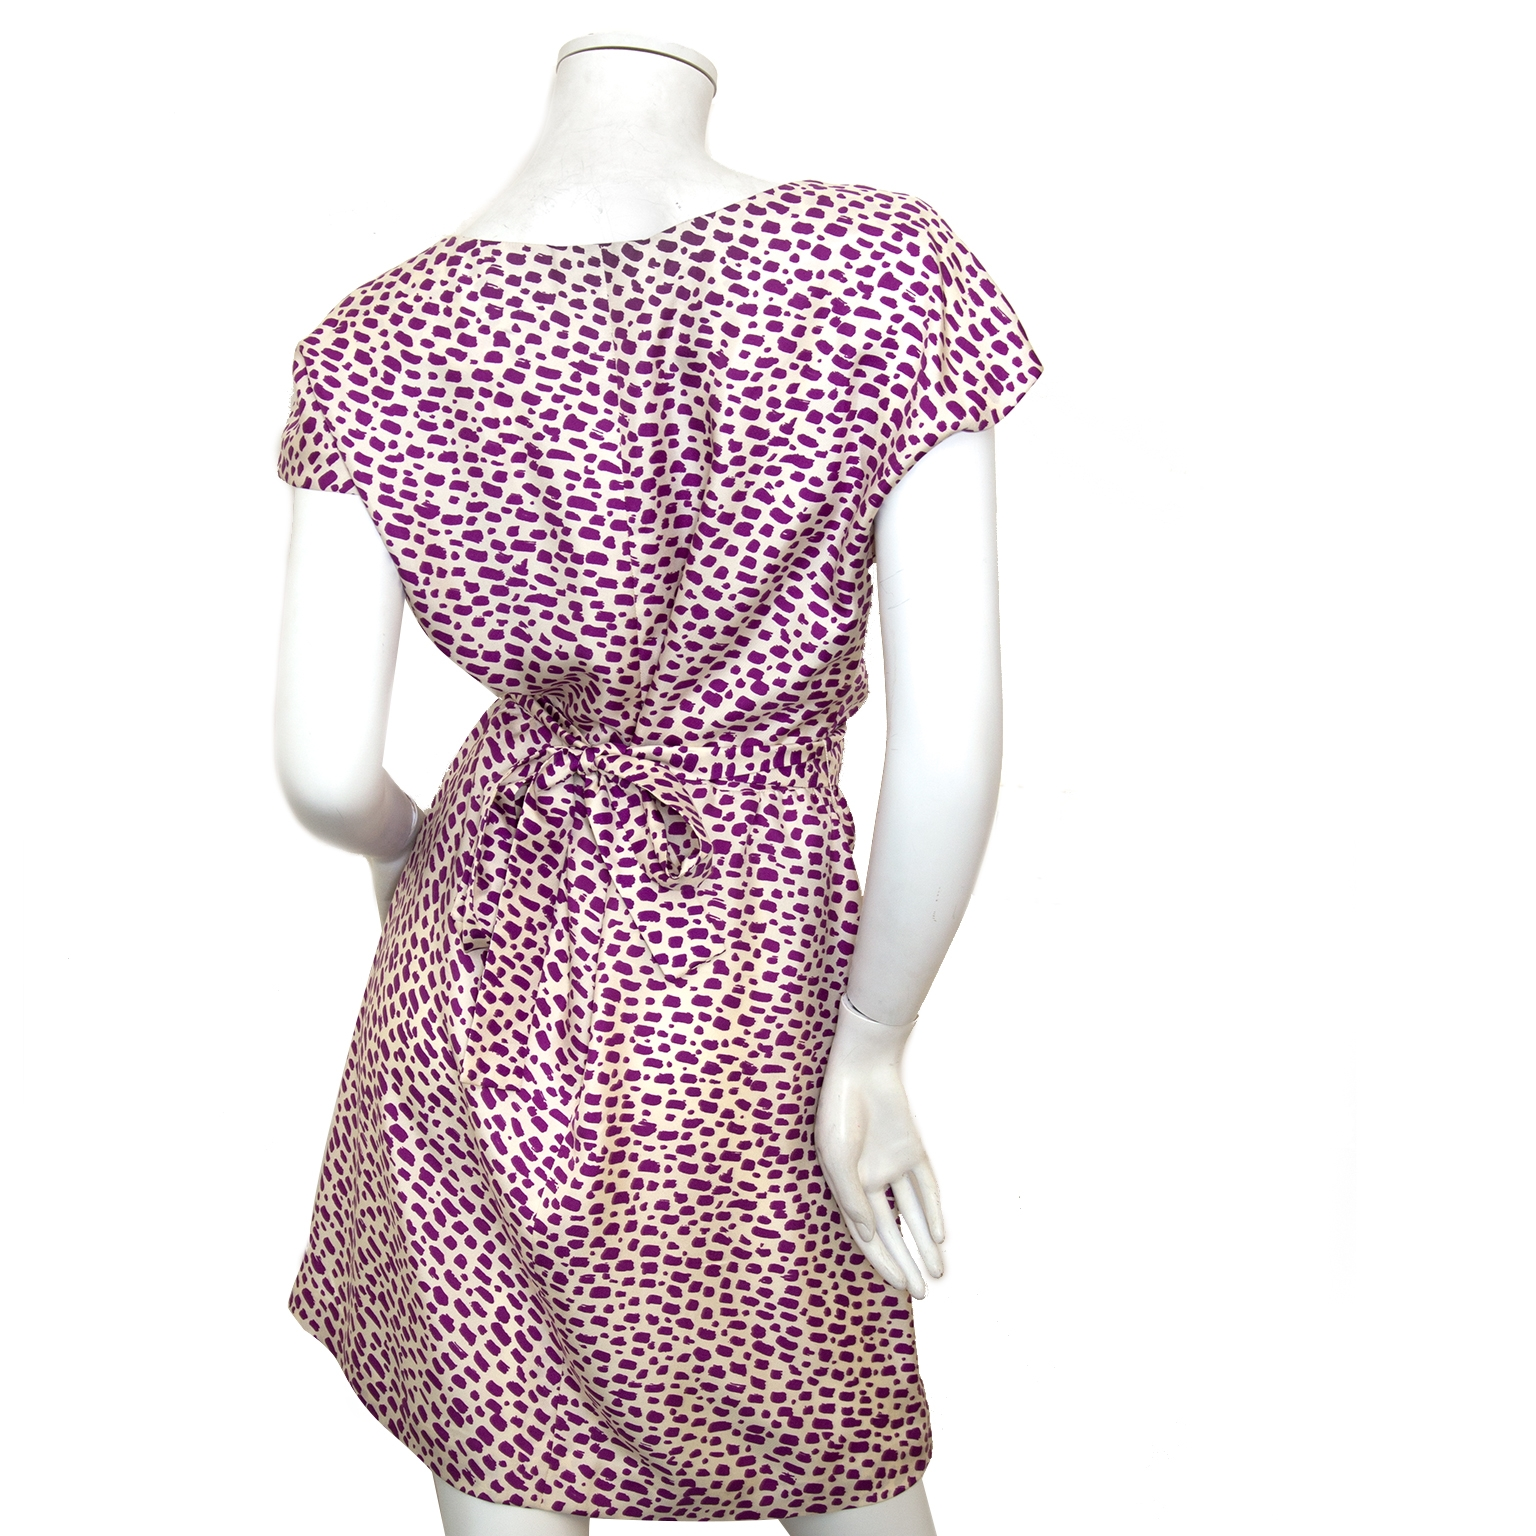 Balenciaga Purple White Pattern Silk Dress - Size 38